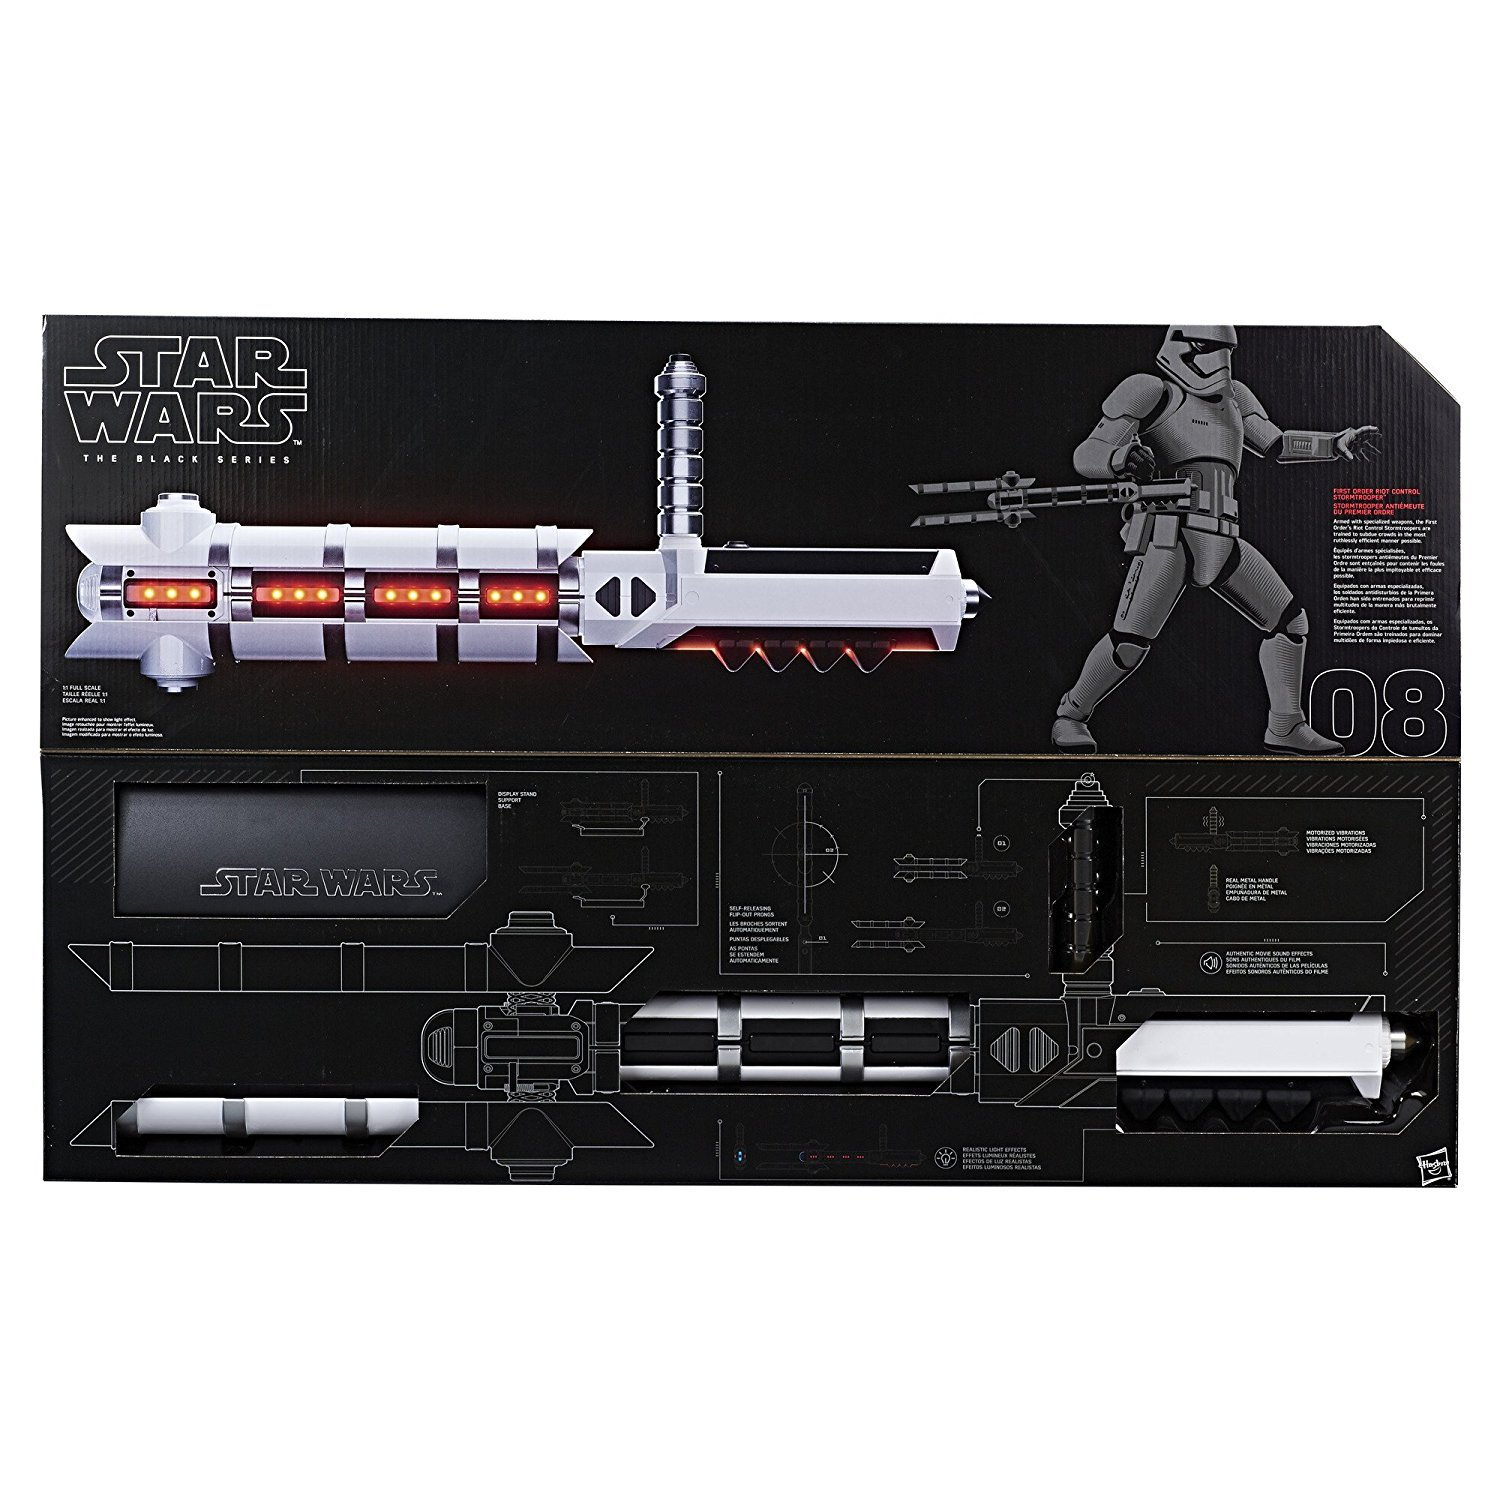 Star Wars The Black Series Force FX Z6 Riot Control Baton Pre-Orders On Amazon